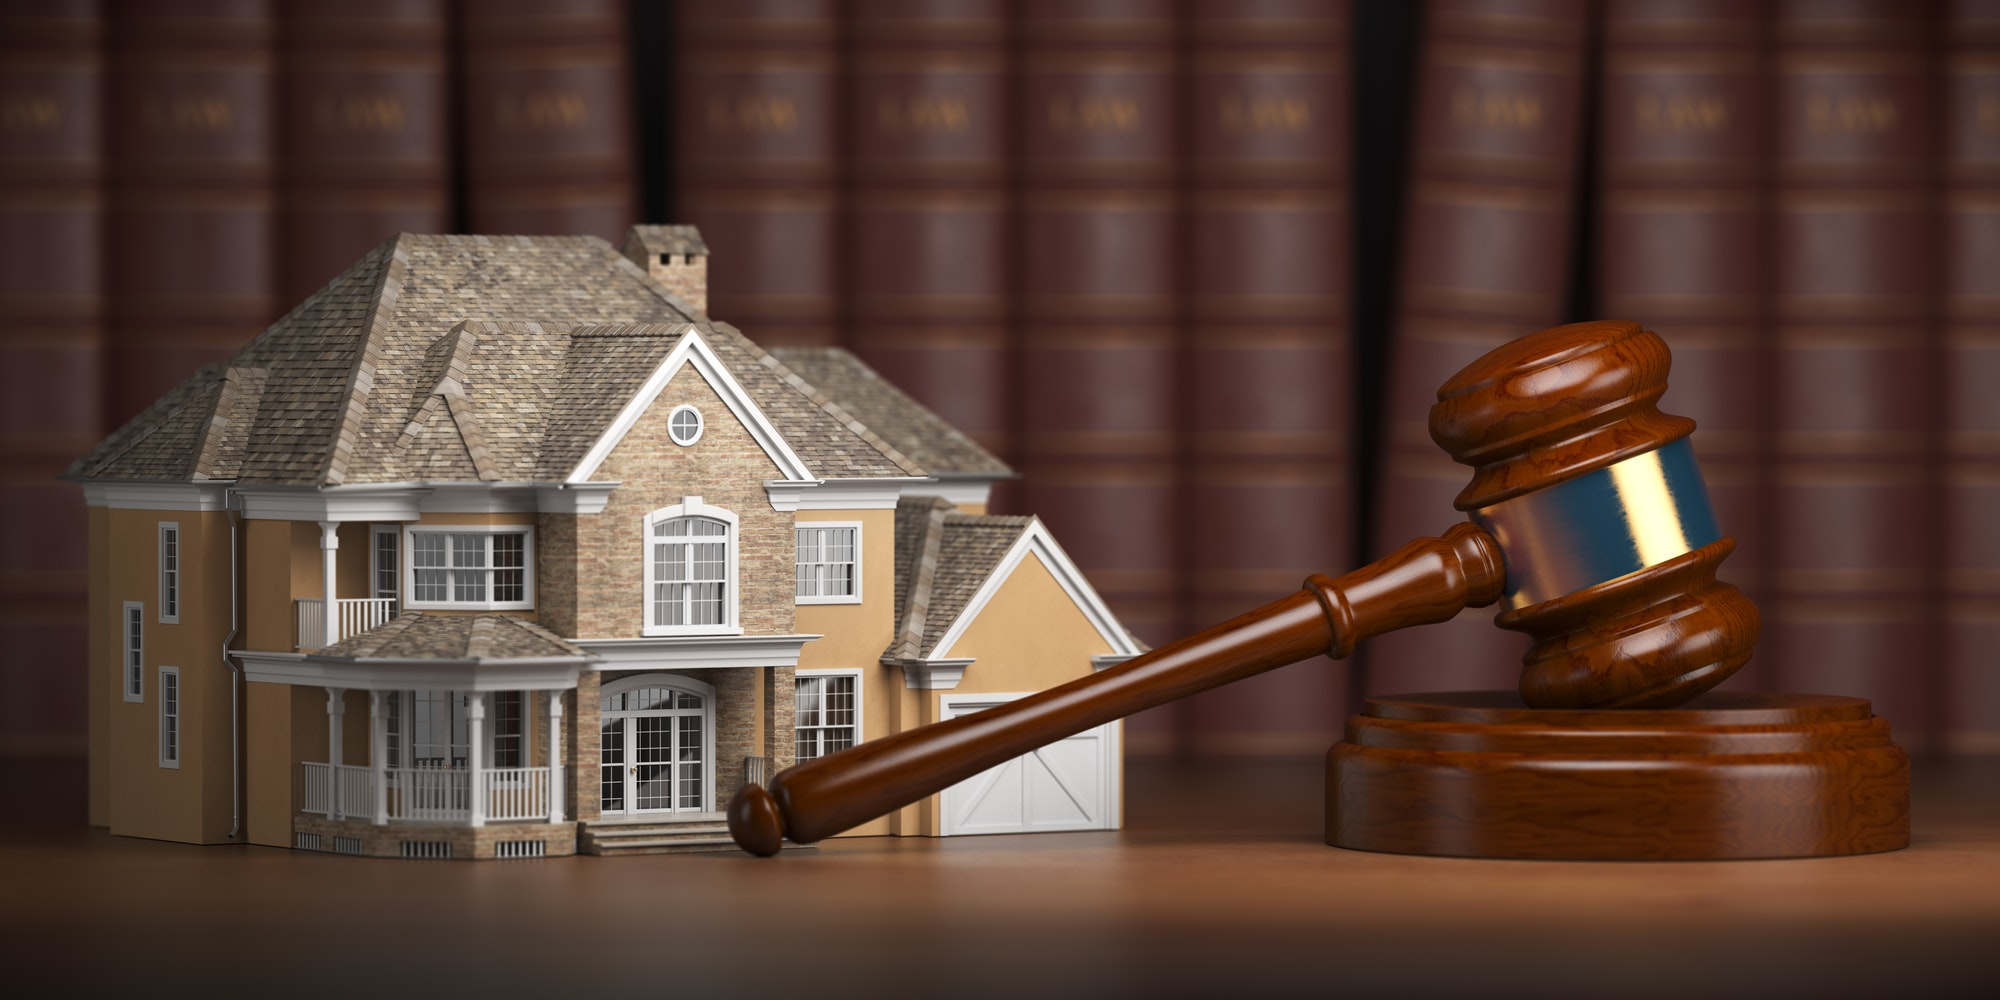 House with gavel and law books. Real estate attorney in boca raton fl